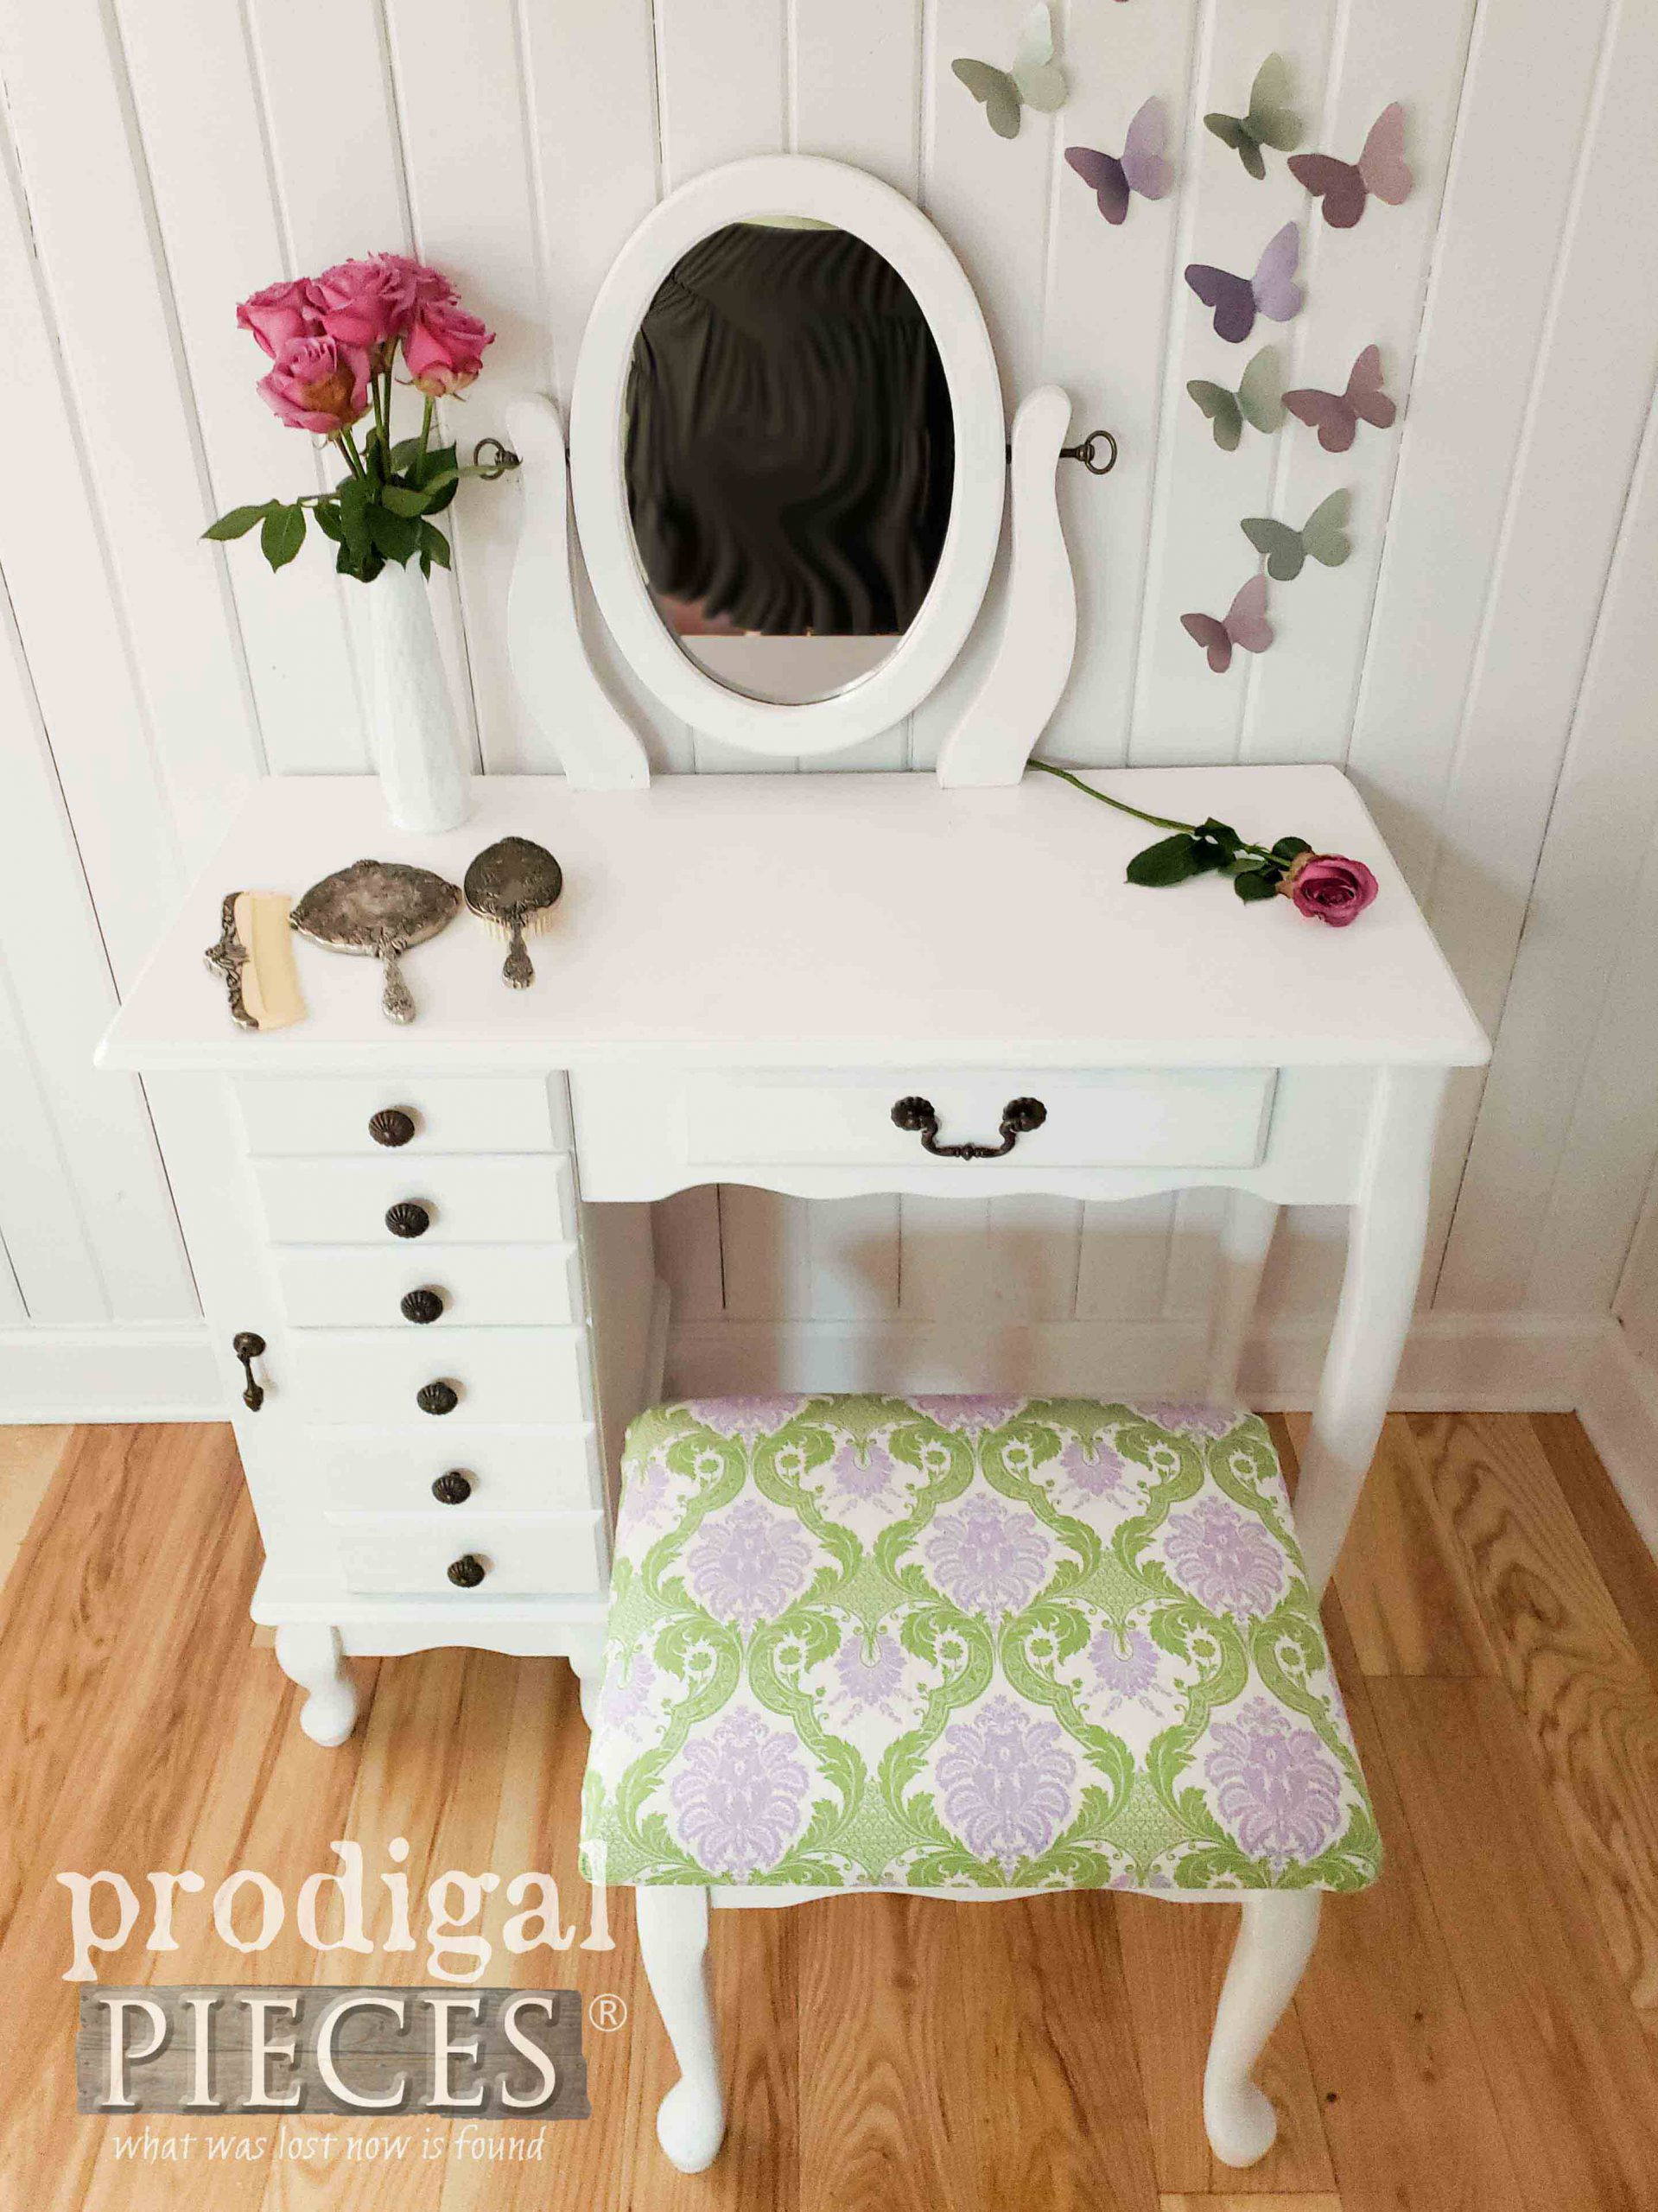 Vintage White Girls Vanity Table Set by Prodigal Pieces | prodigalpieces.com #furniture #home #homedecor #bedroom #kids